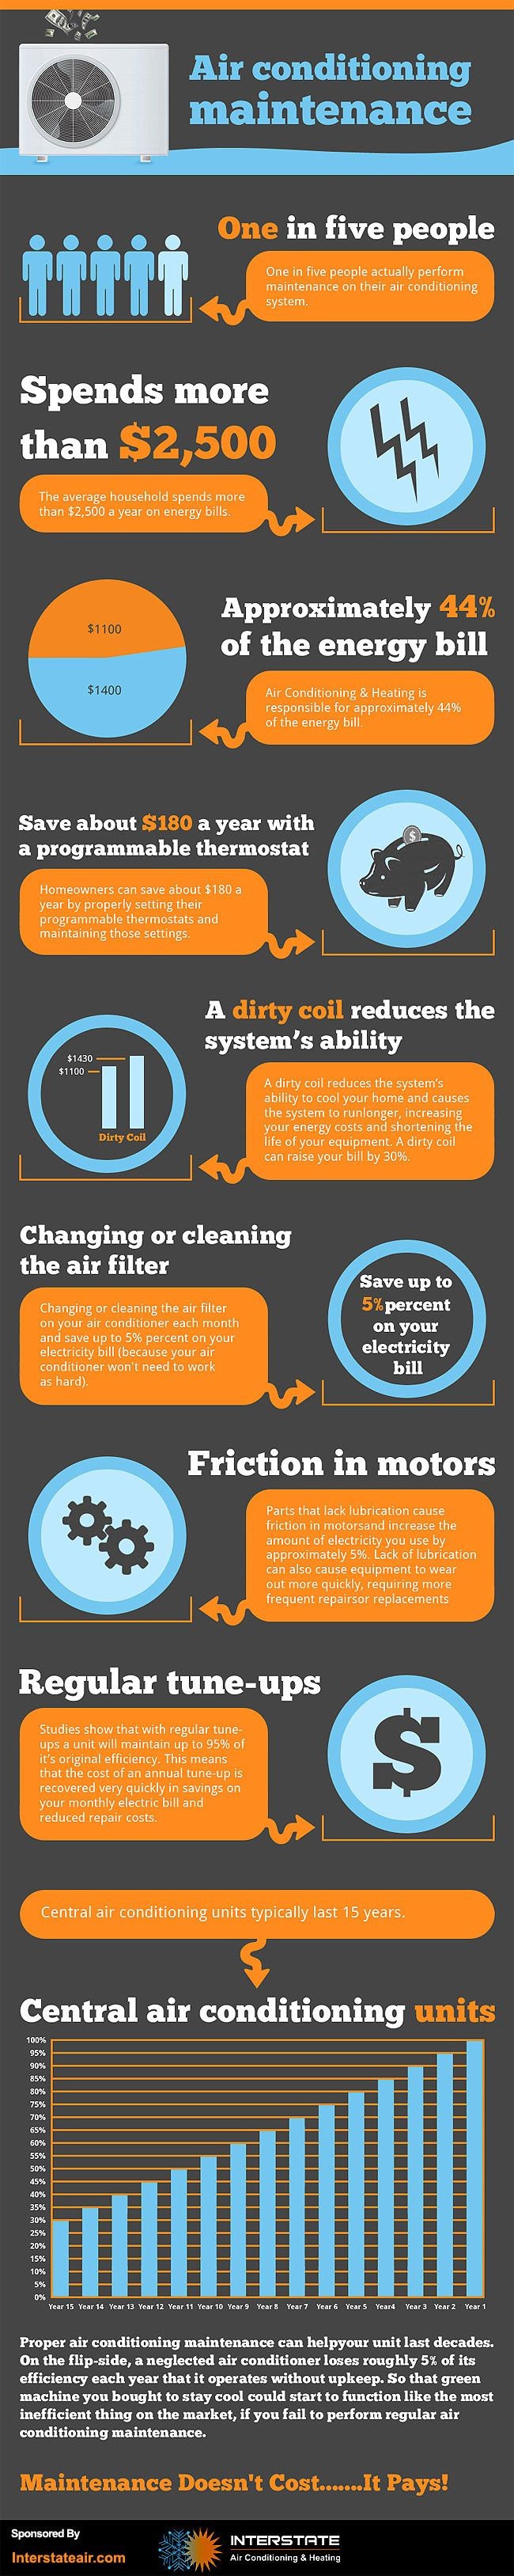 A h heating air conditioning service - Great Tips For Maintaining Your Ac System Http Www Interstateair Hvac Maintenanceair